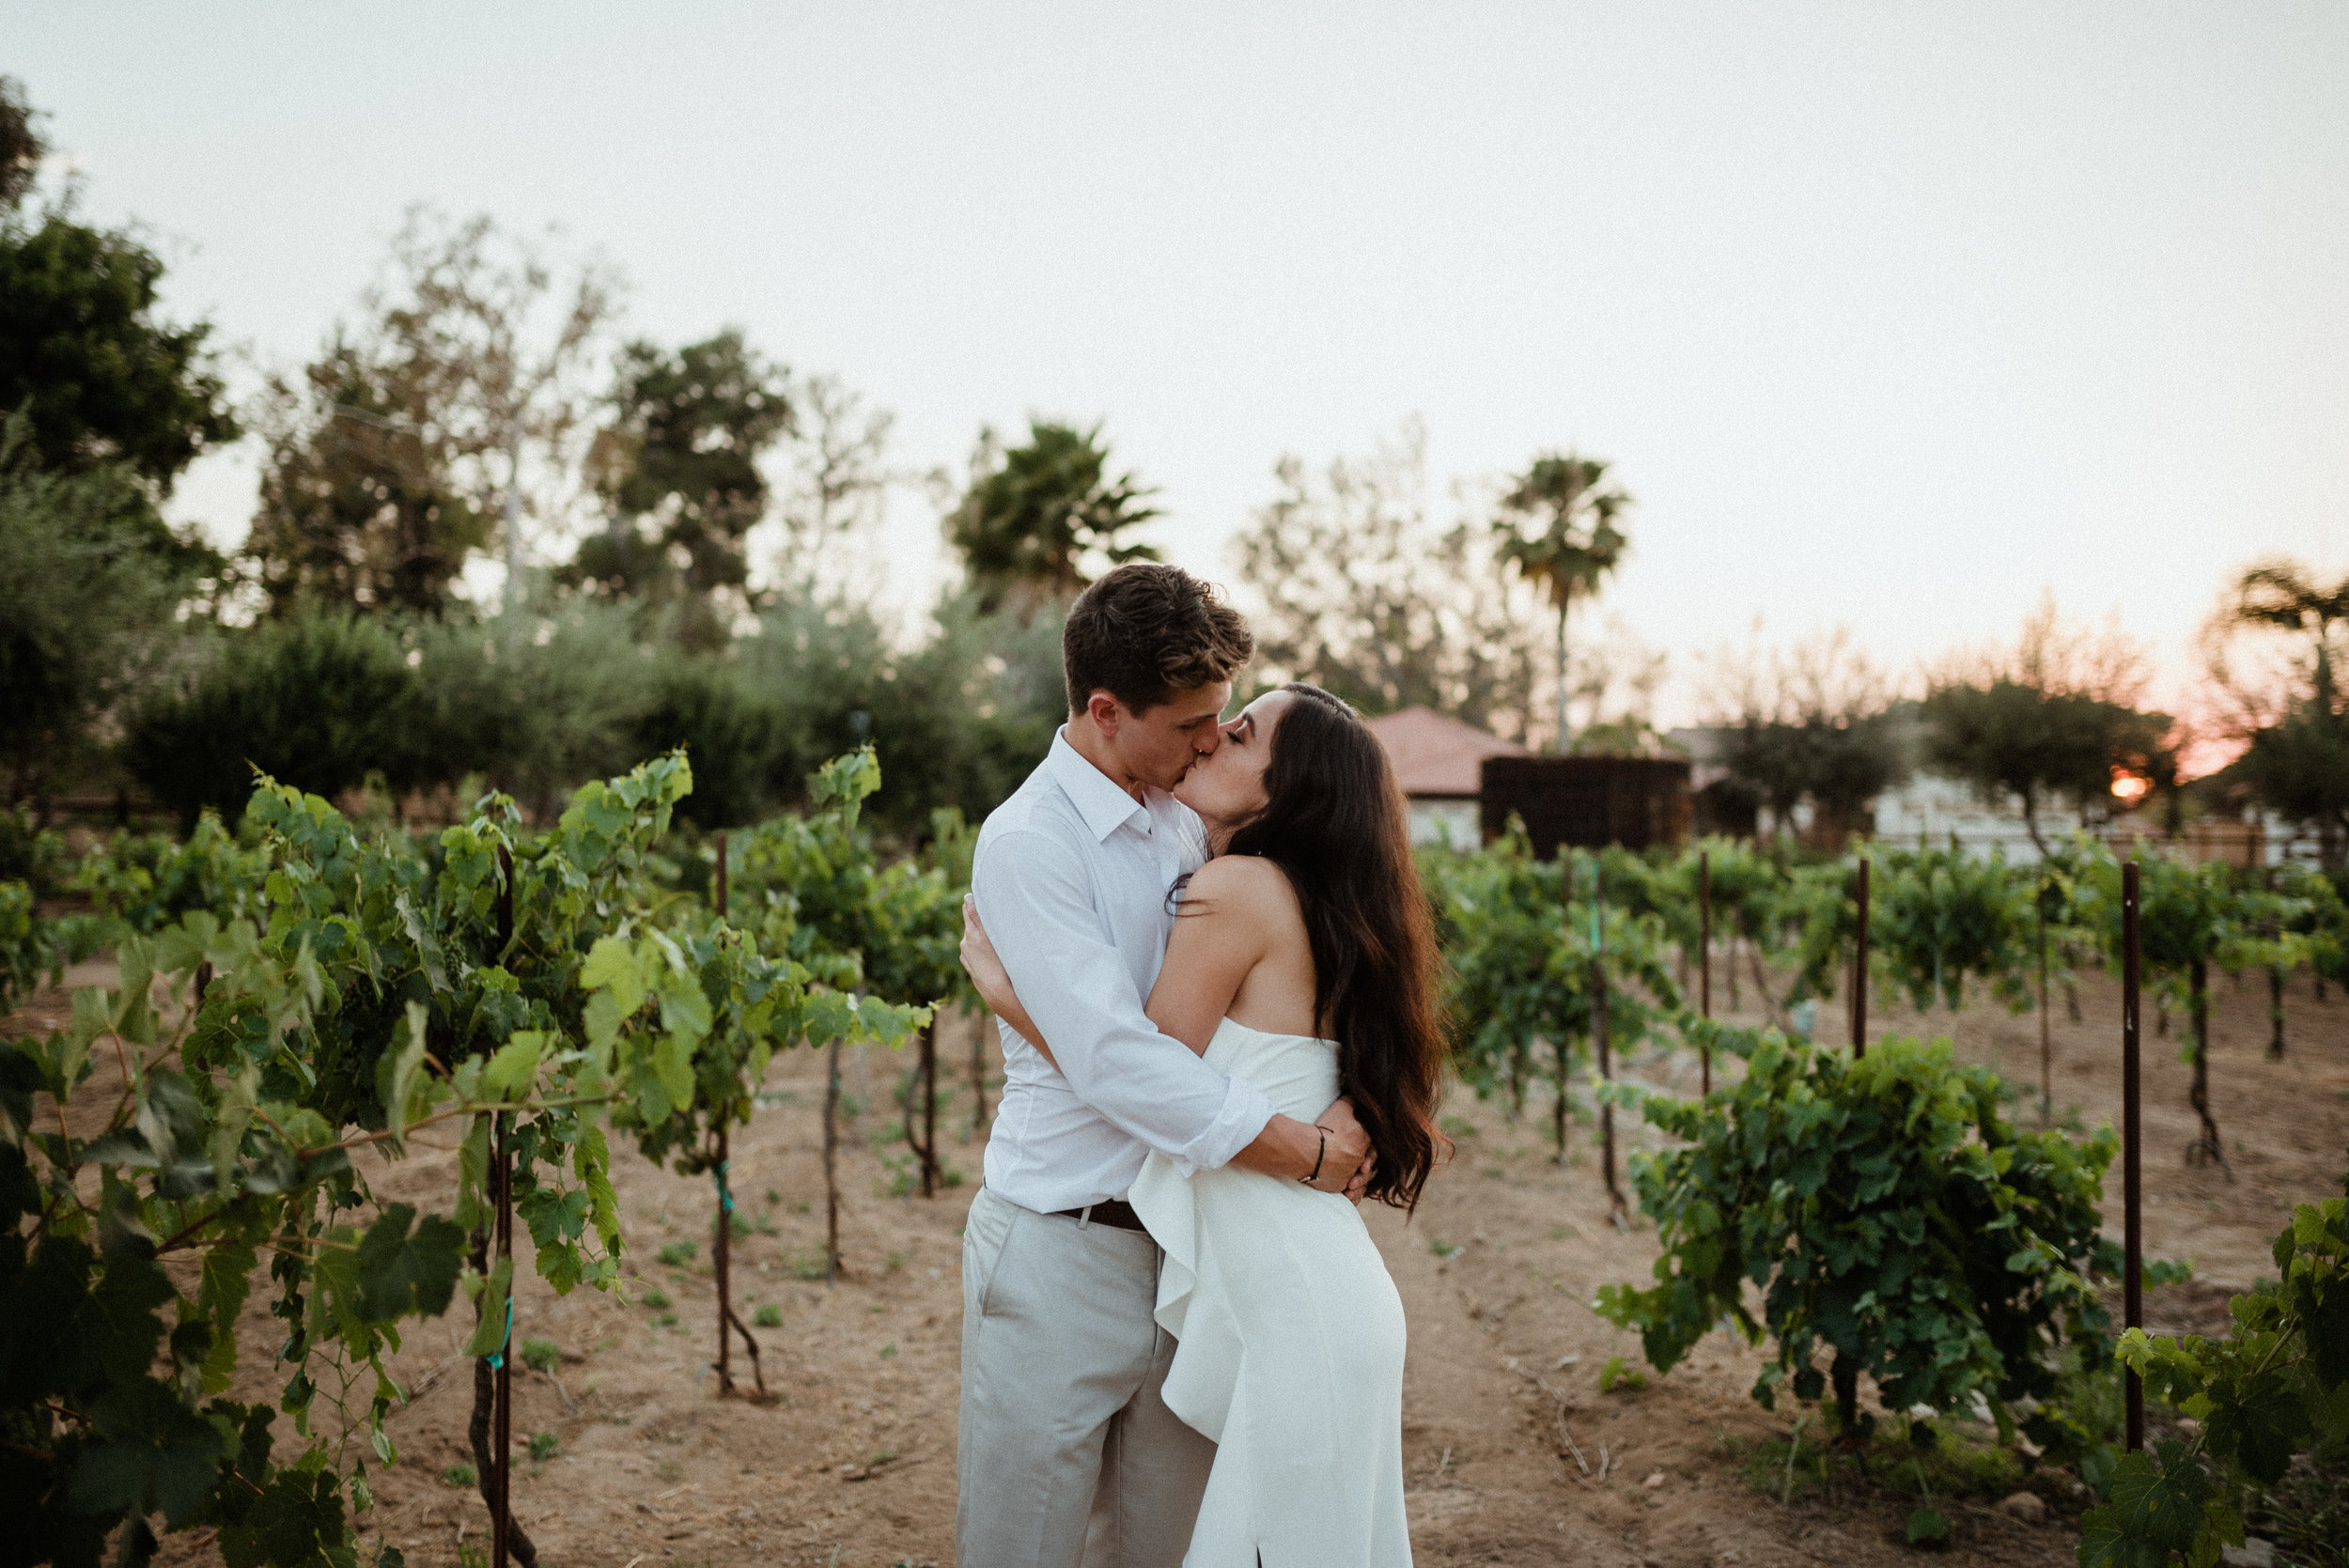 SanDiego-California-Bernardo-Winery-WashingtonDC-wedding-photographer-earthy-desert-wedding-LizRachelPhoto_0033